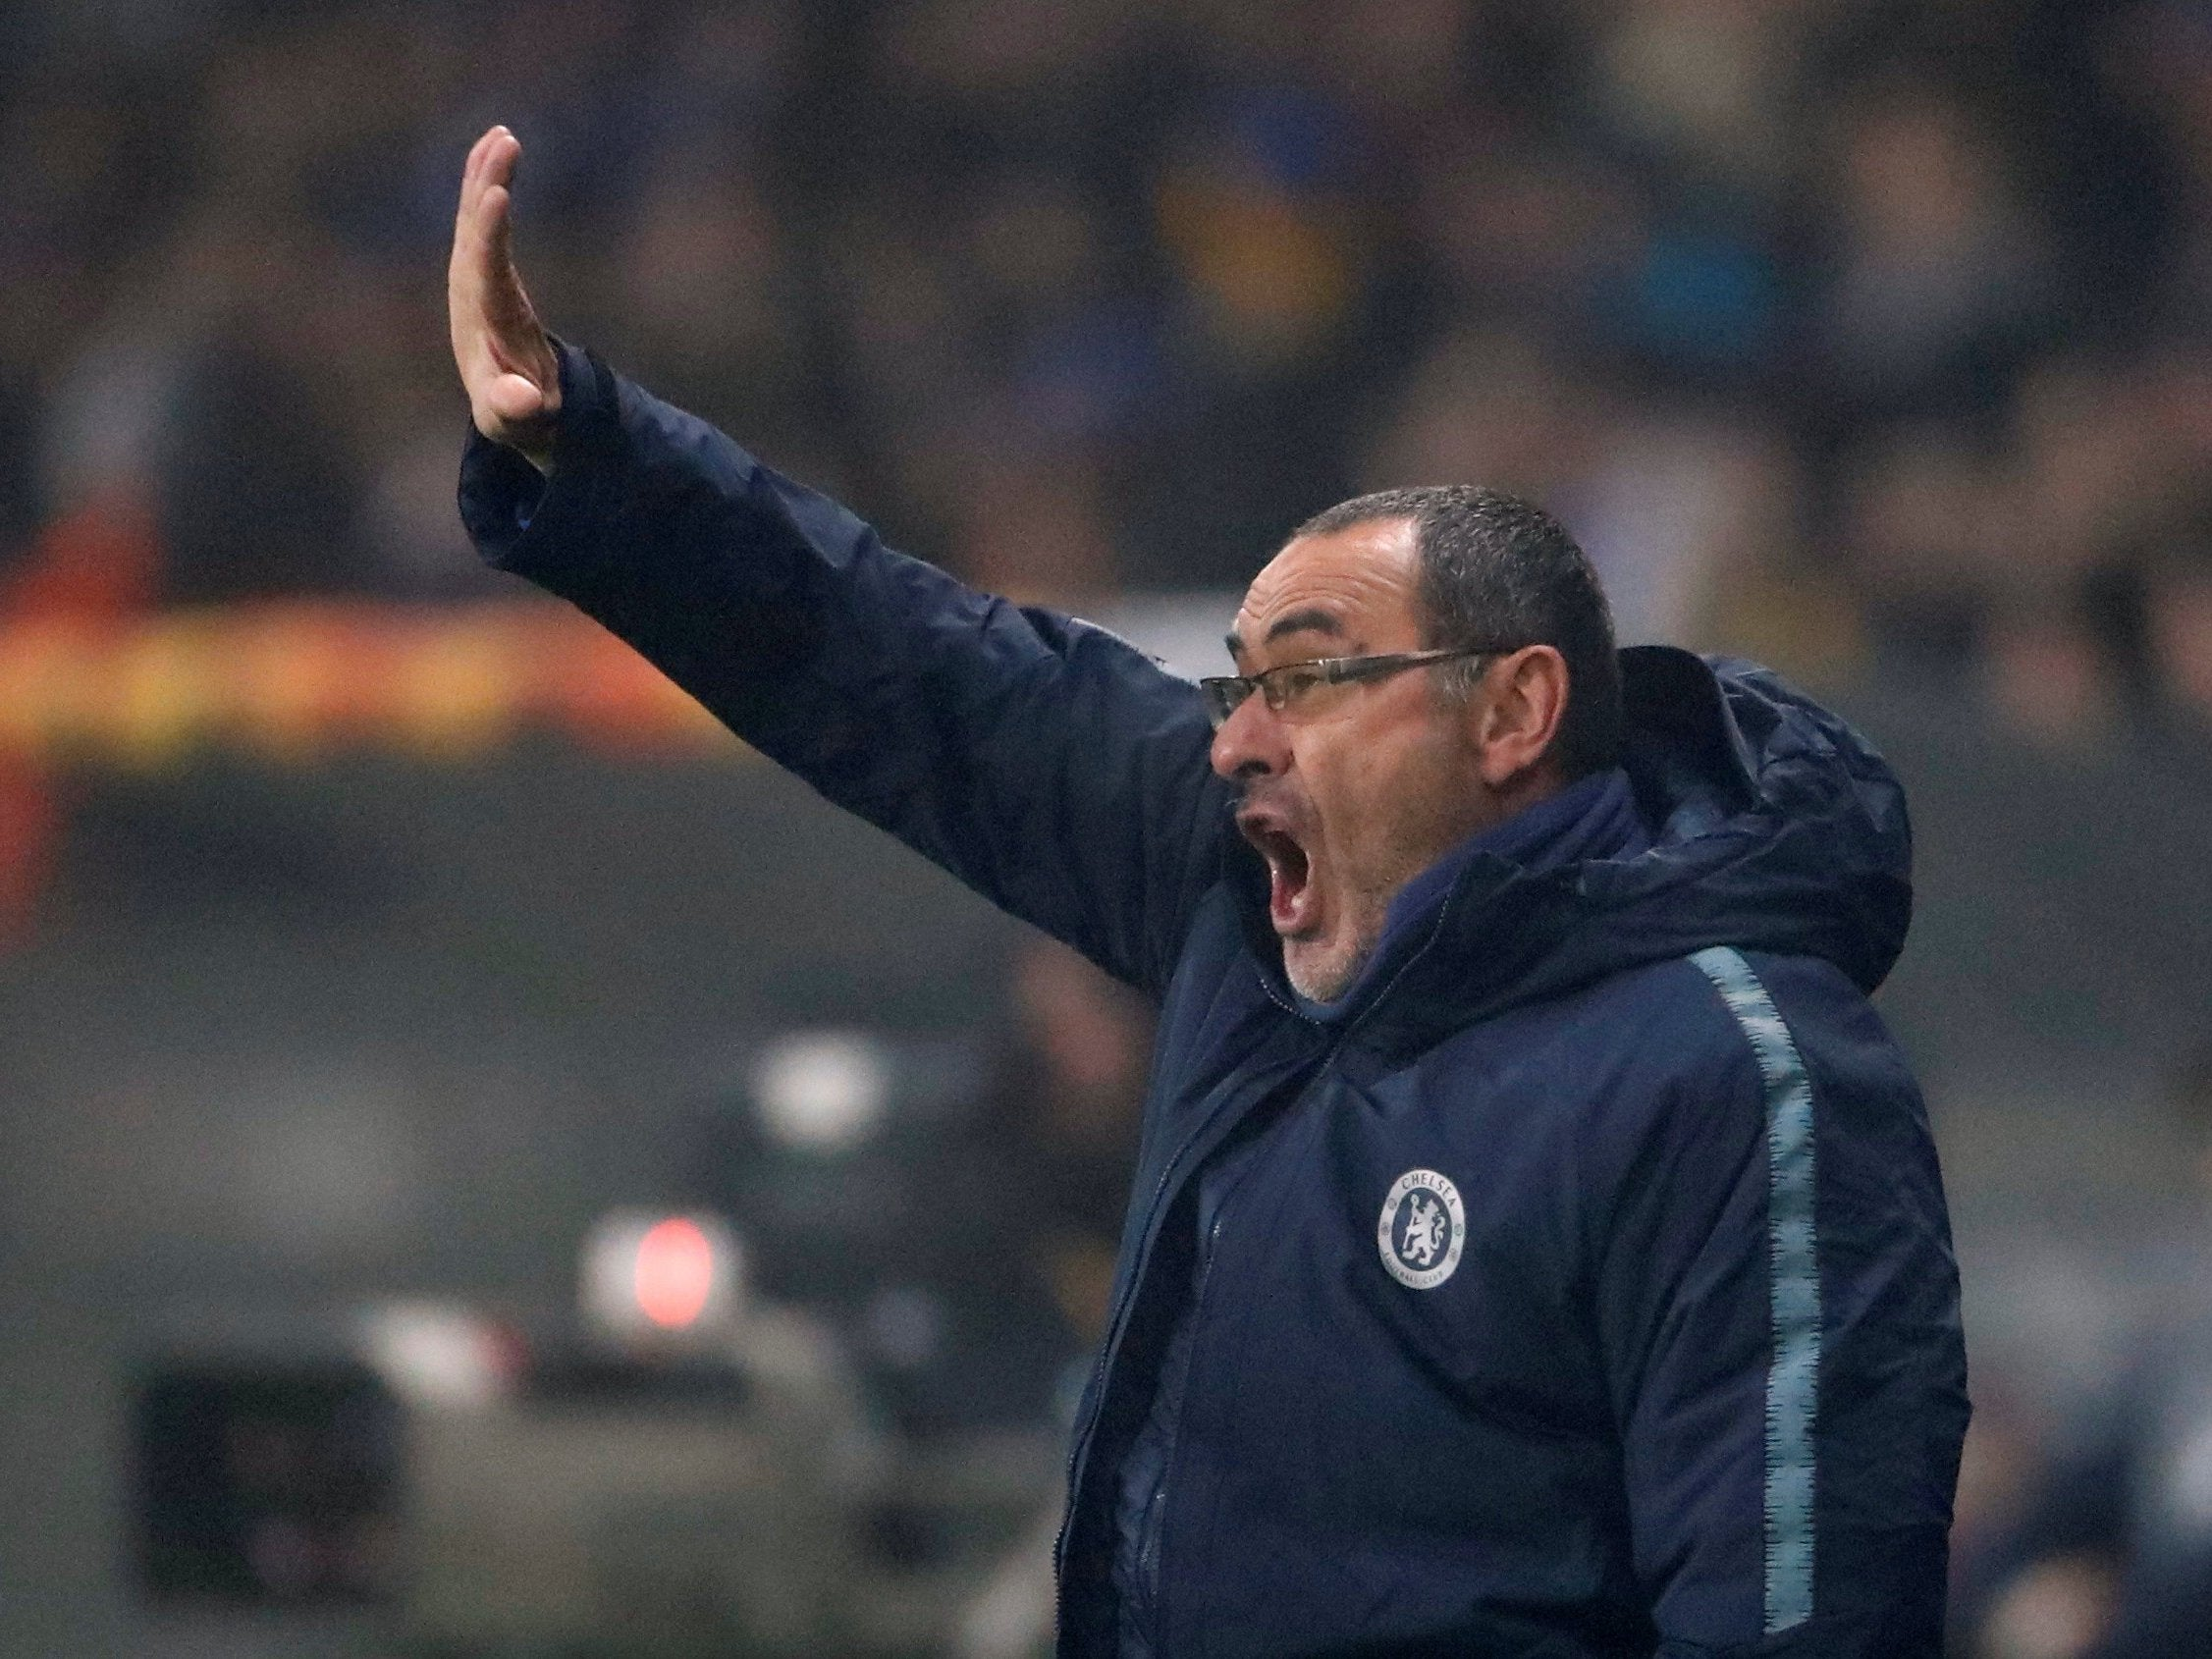 BATE Borisov vs Chelsea: Maurizio Sarri fights off fever and challenges his side to improve after slim victory